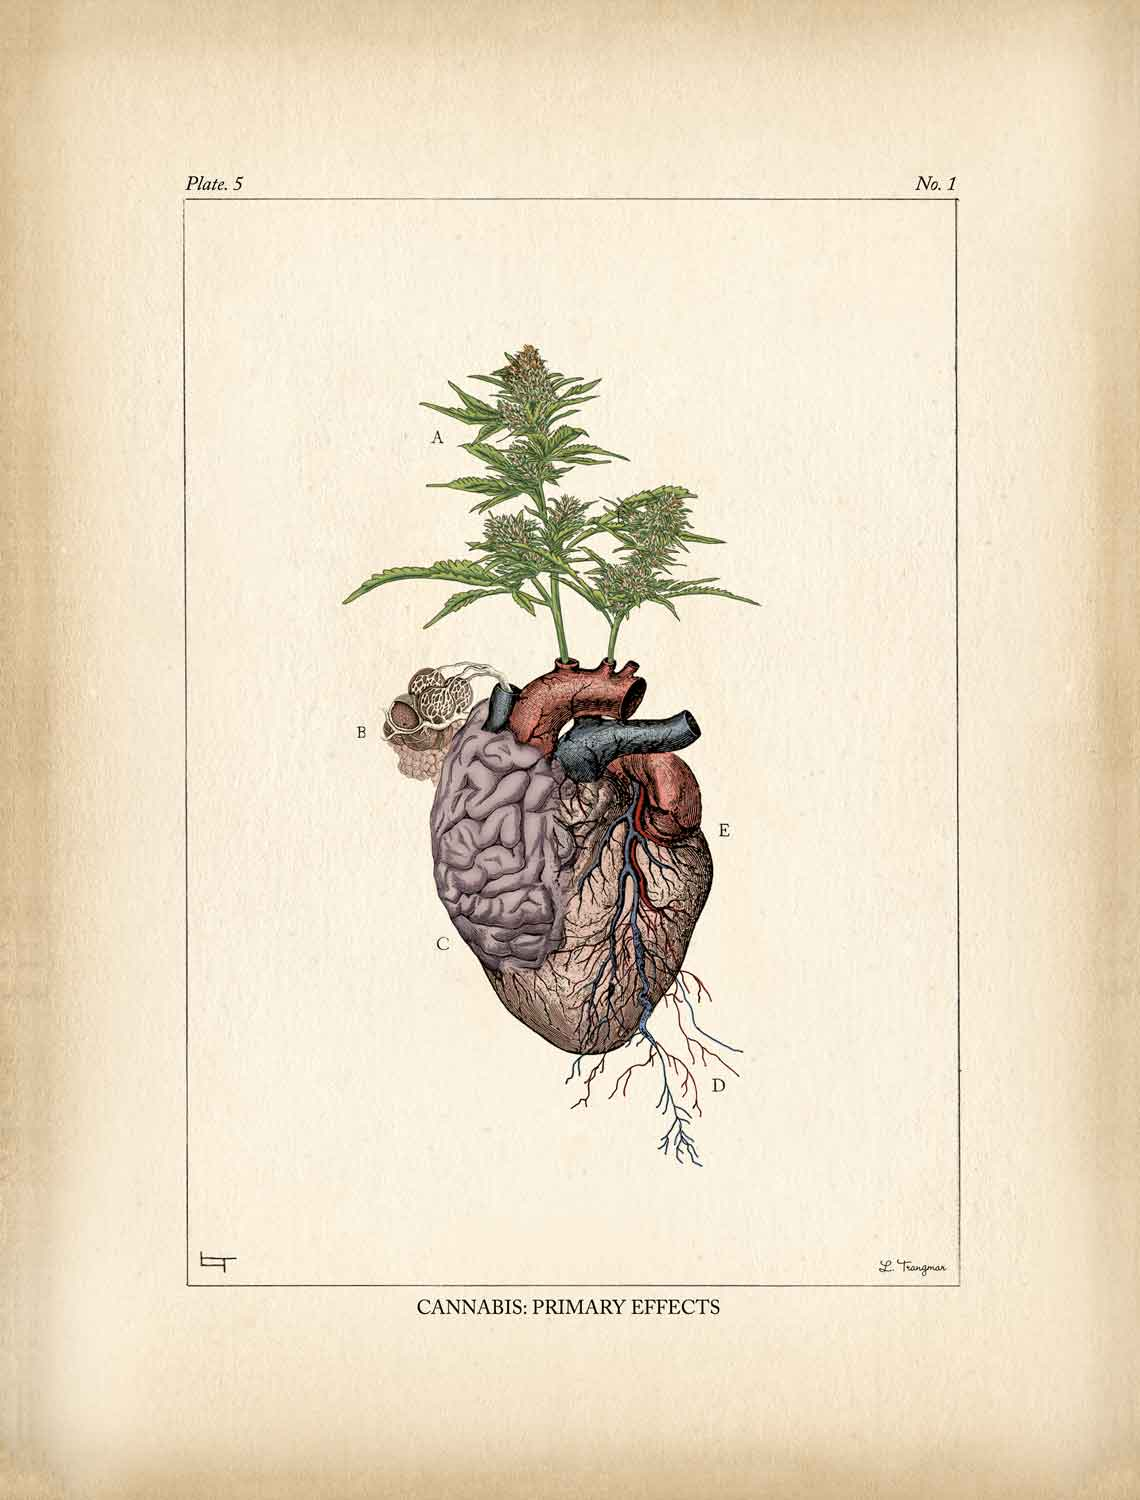 Cannabis: Primary Effects